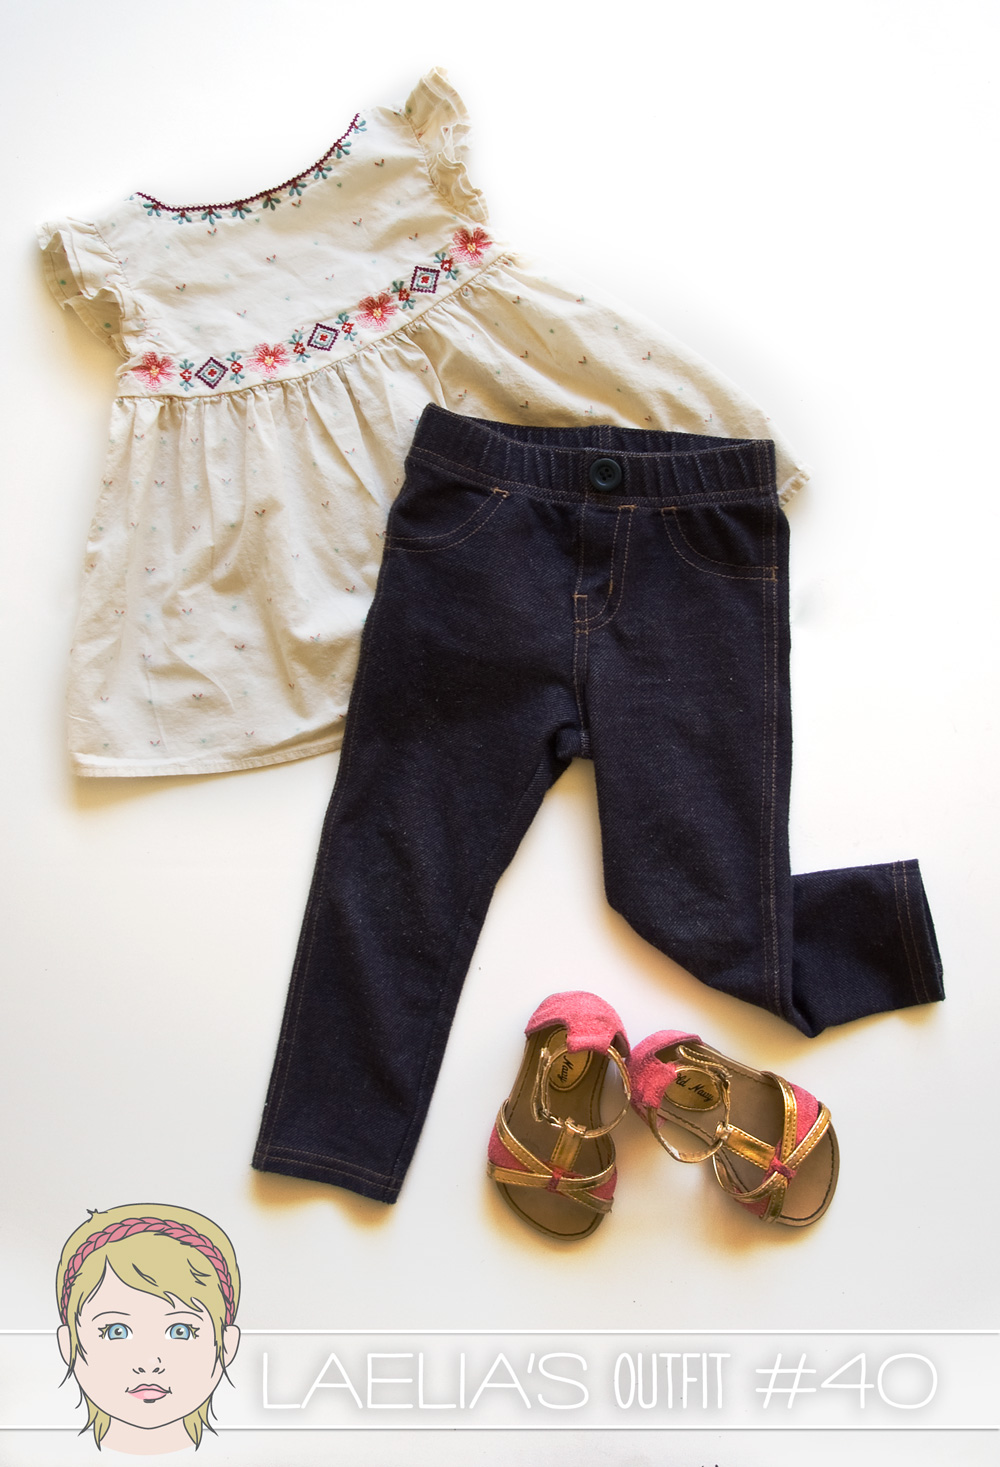 LaeliaOutfit40